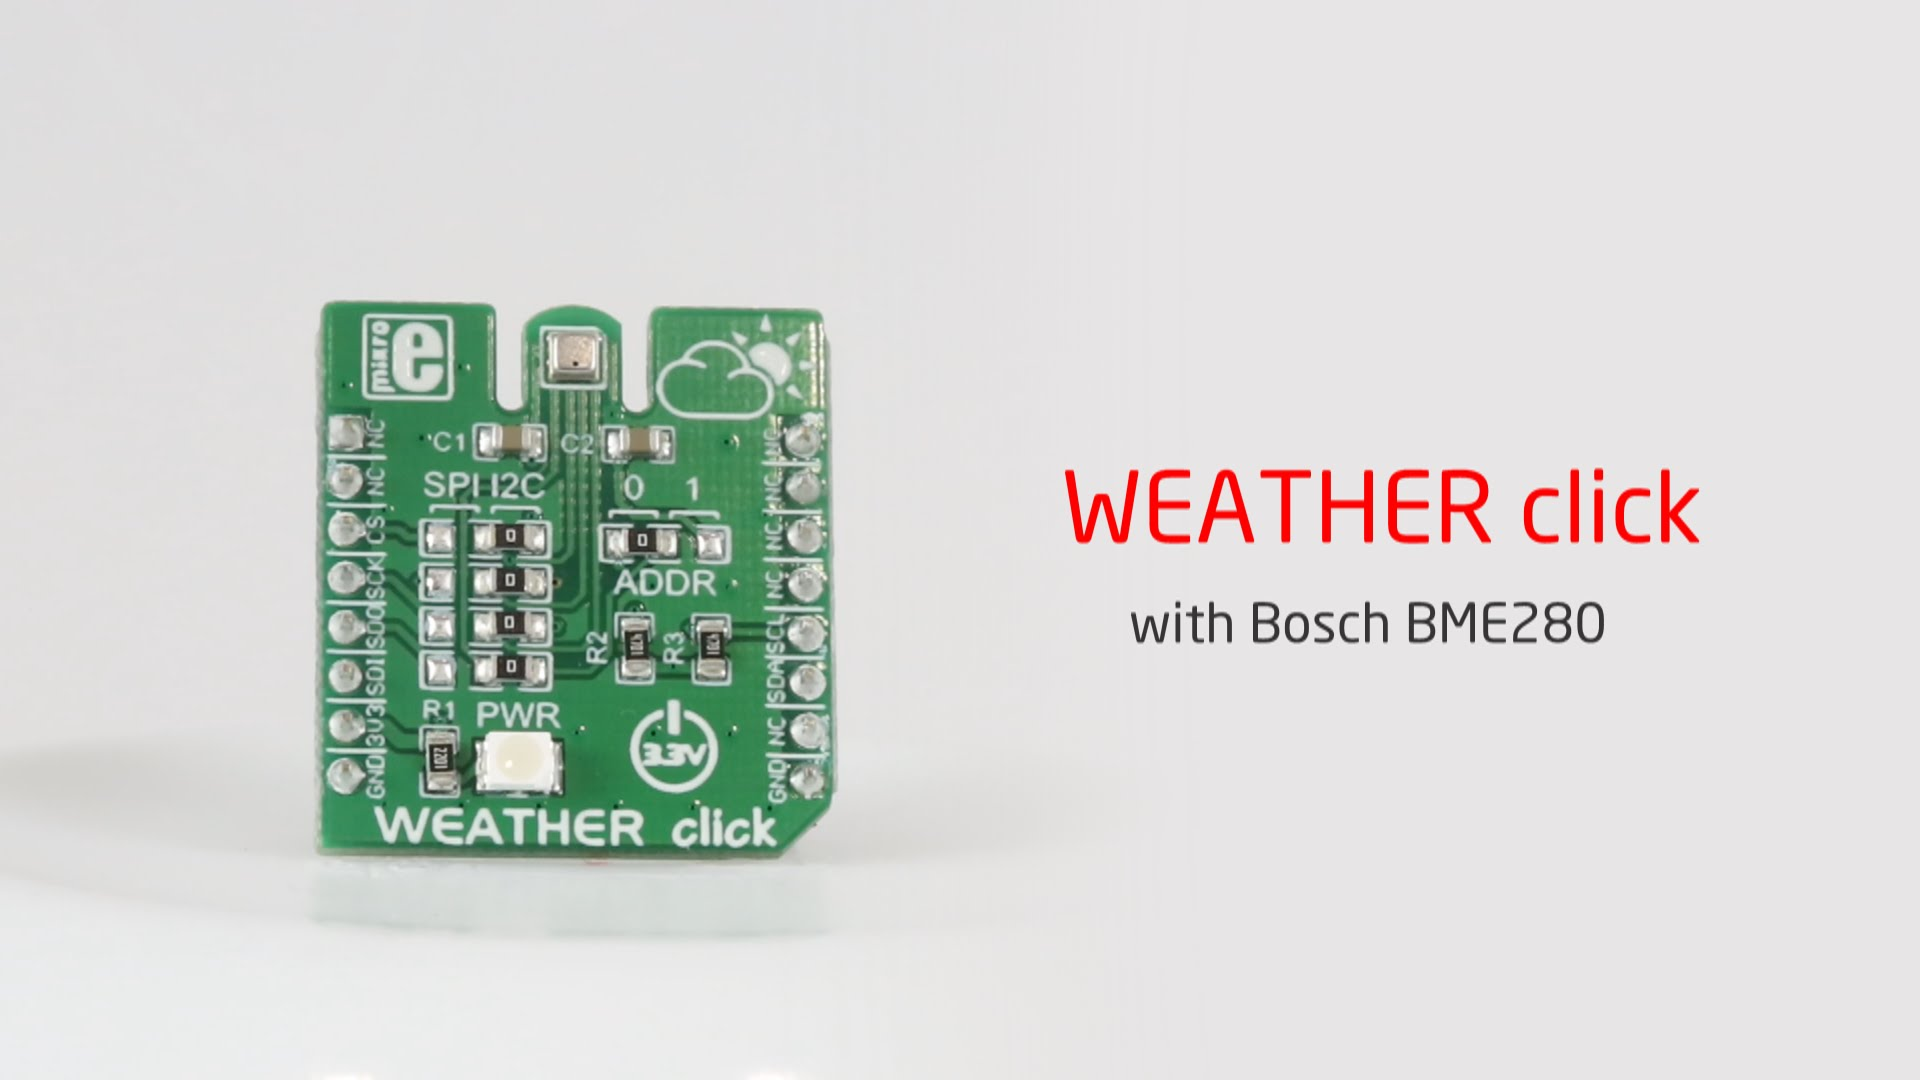 Weather click released